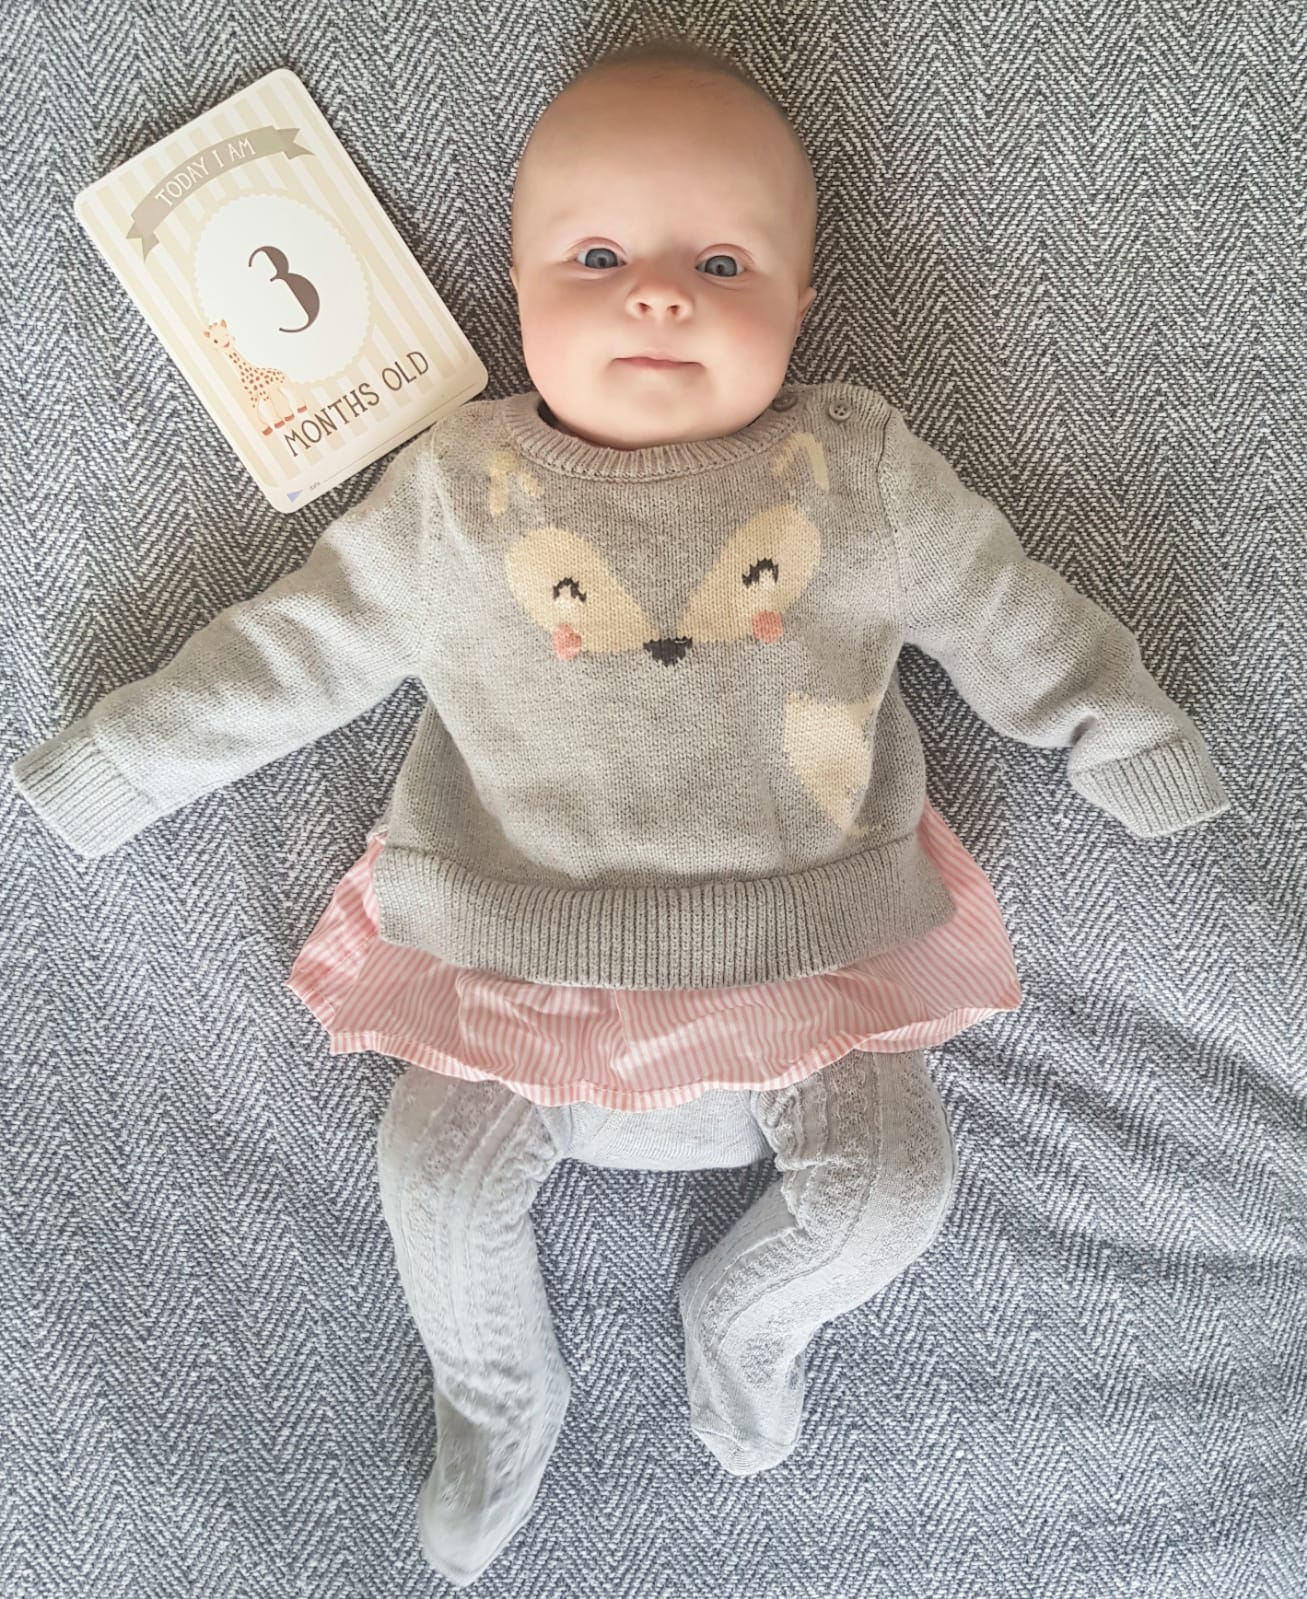 Pearl's Three Month Update